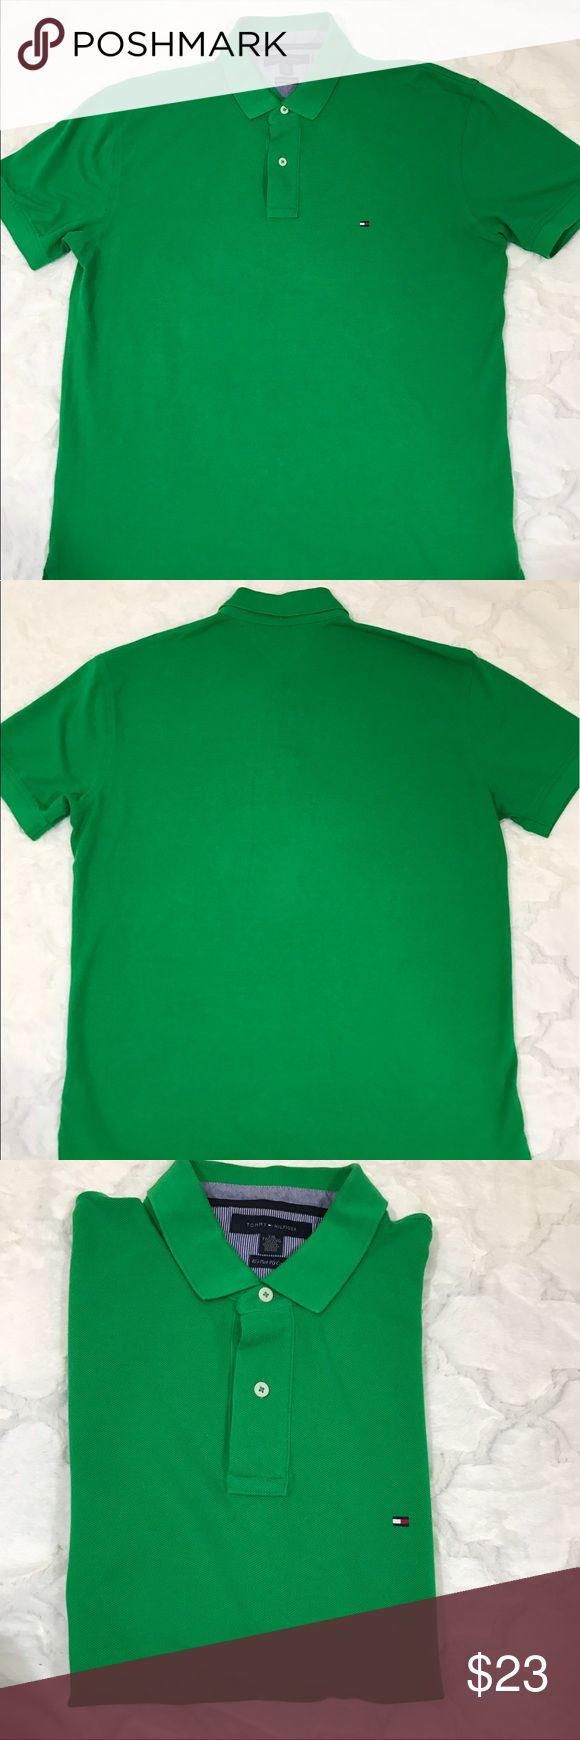 Tommy Hilfiger polo green XXL men's Gently used. No stains or tears. Men's XXL. Tommy Hilfiger Shirts Polos